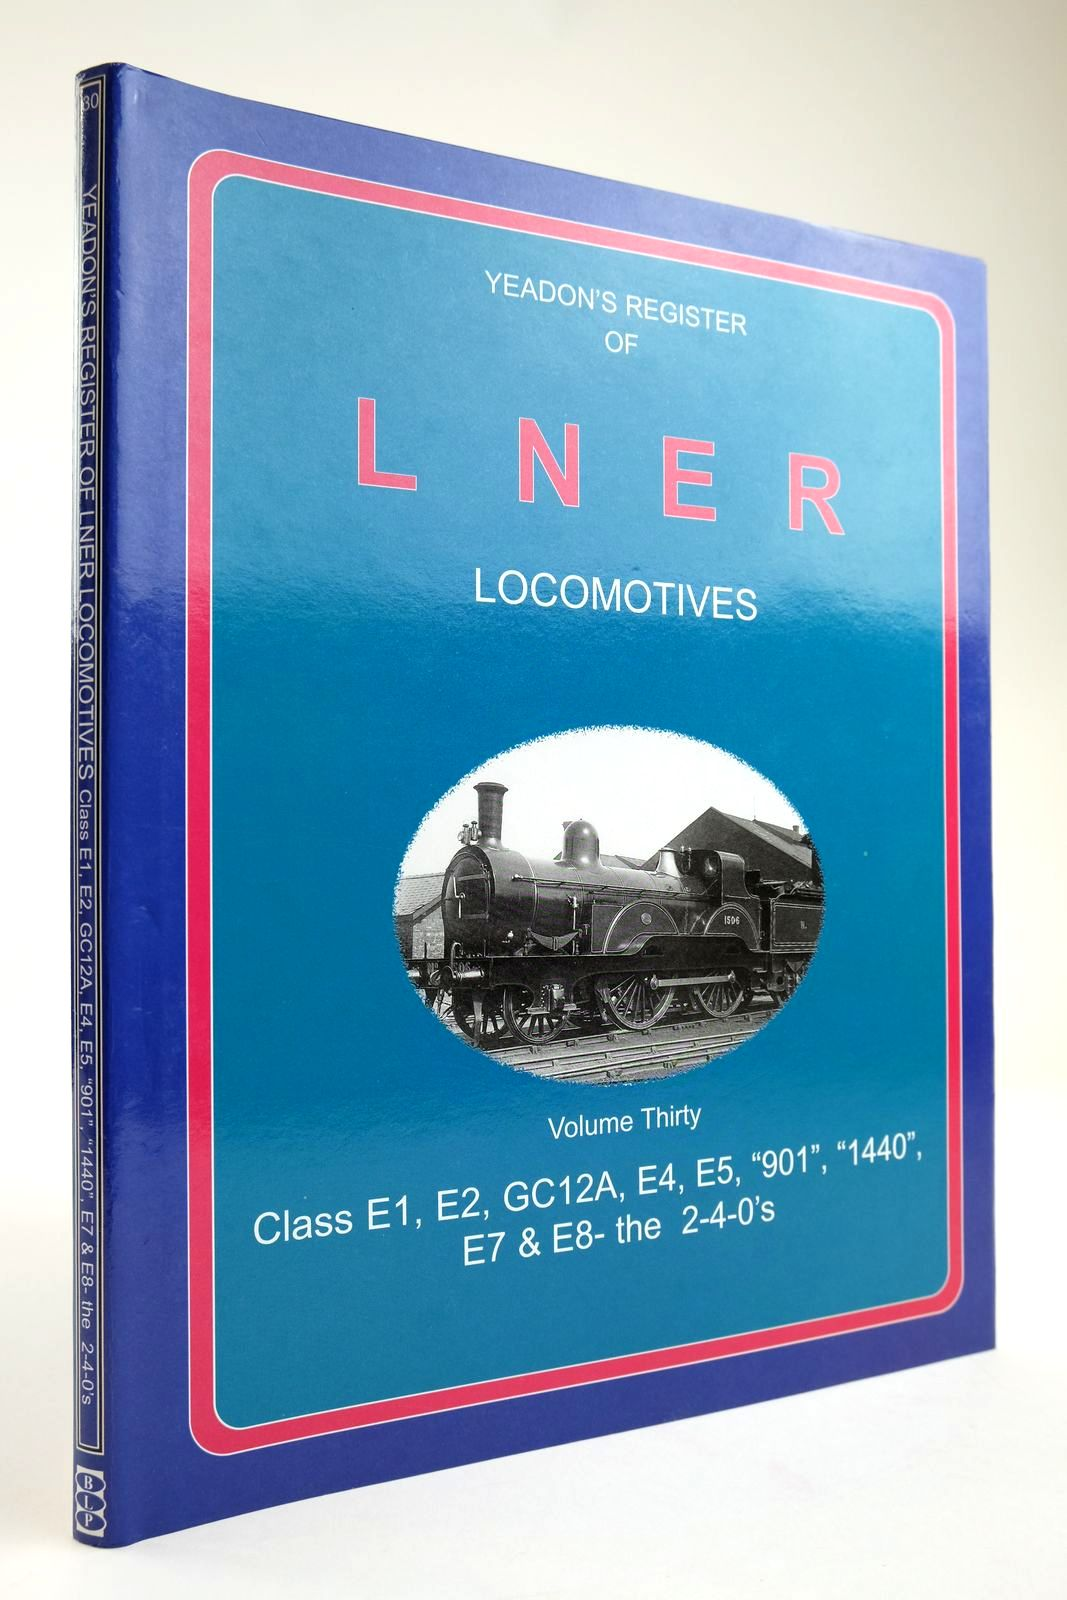 Photo of YEADON'S REGISTER OF LNER LOCOMOTIVES VOLUME THIRTY- Stock Number: 2133586